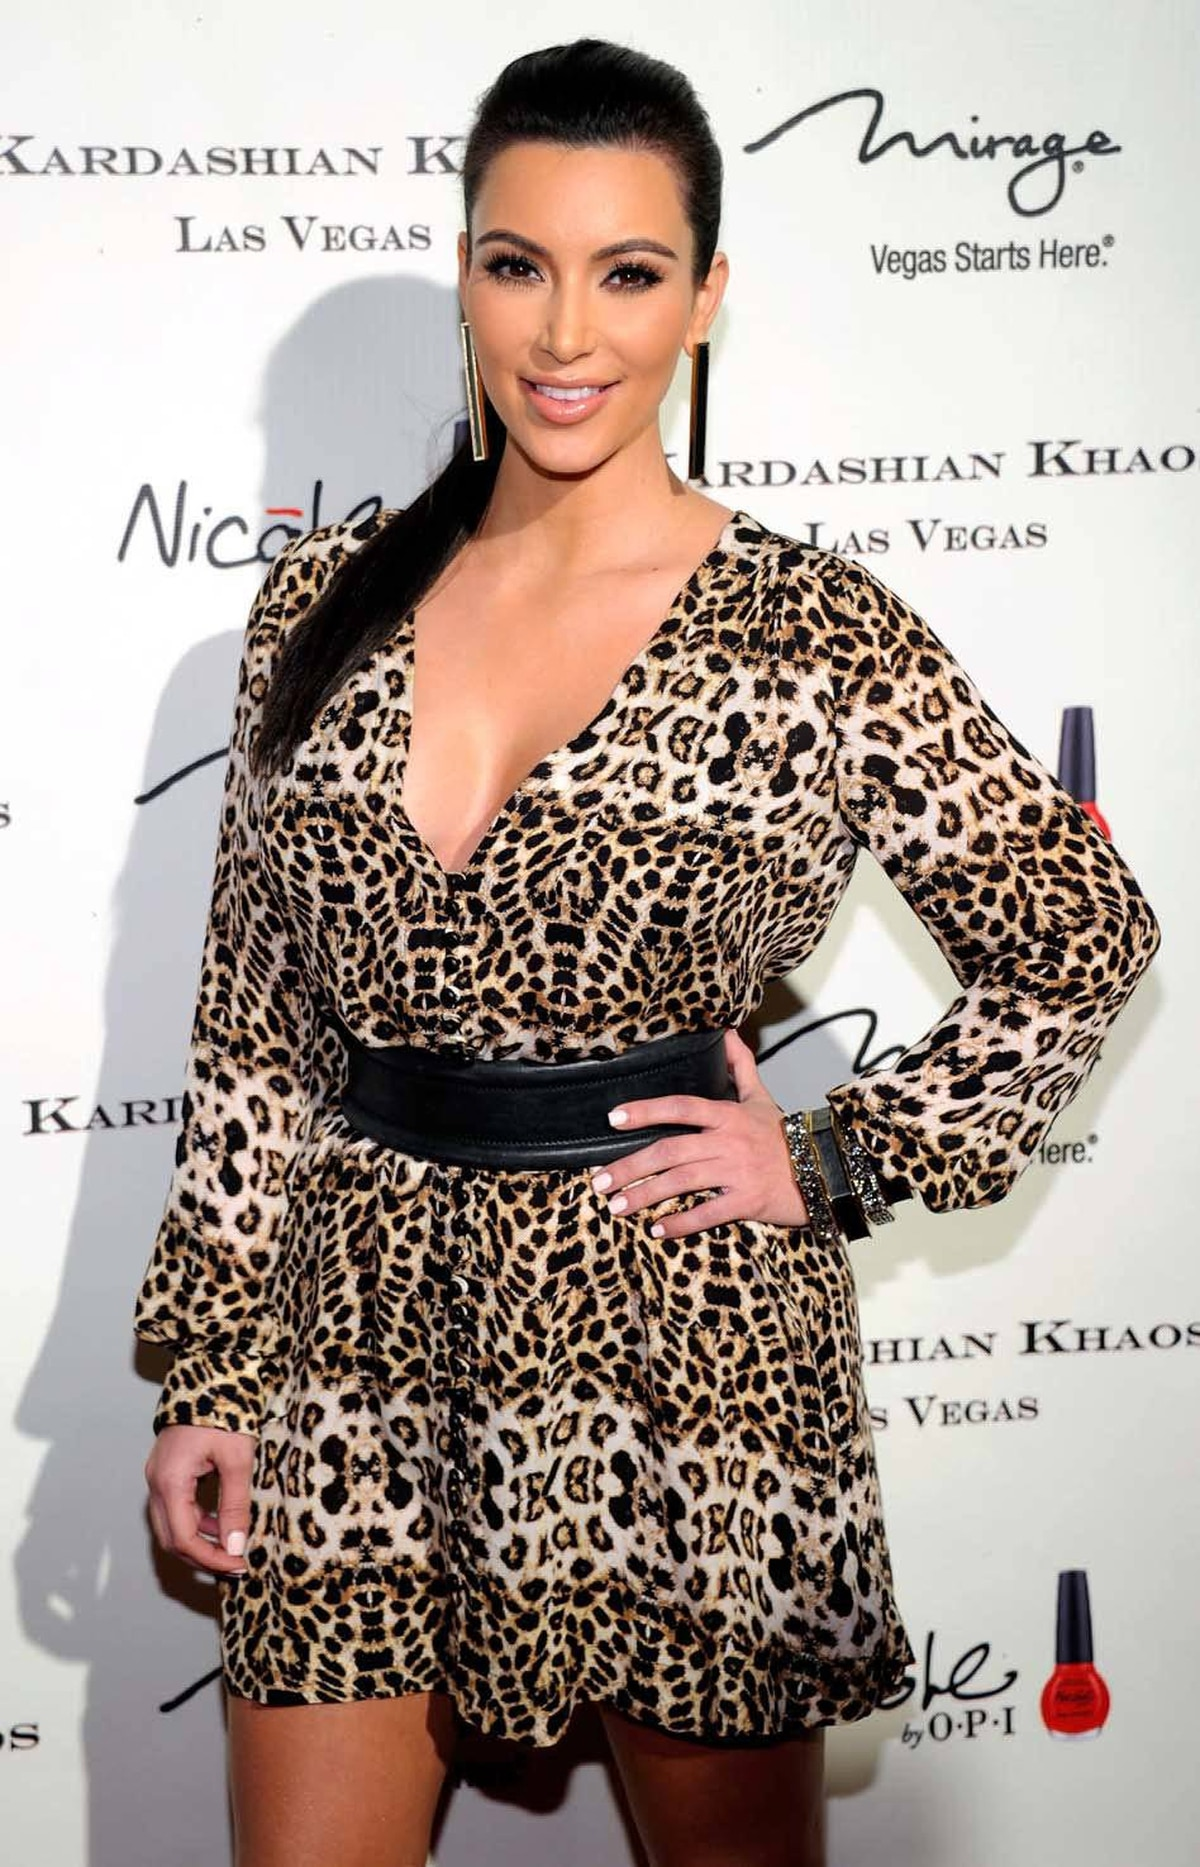 IF A COUPLE GETS MARRIED AND ONLY 9-MILLION PEOPLE WATCH, DOES IT STILL COUNT? Kim Kardashian attends the opening of the Kardashian Khaos store in Las Vegas on Dec. 15, capping a year -- okay, a summer -- during which she got engaged, married and separated. Oddly, the time period matched the shooting schedule of a reality show. Prediction: The bar for fake marriage has now been set so low that Jack Nicholson will give it a try.